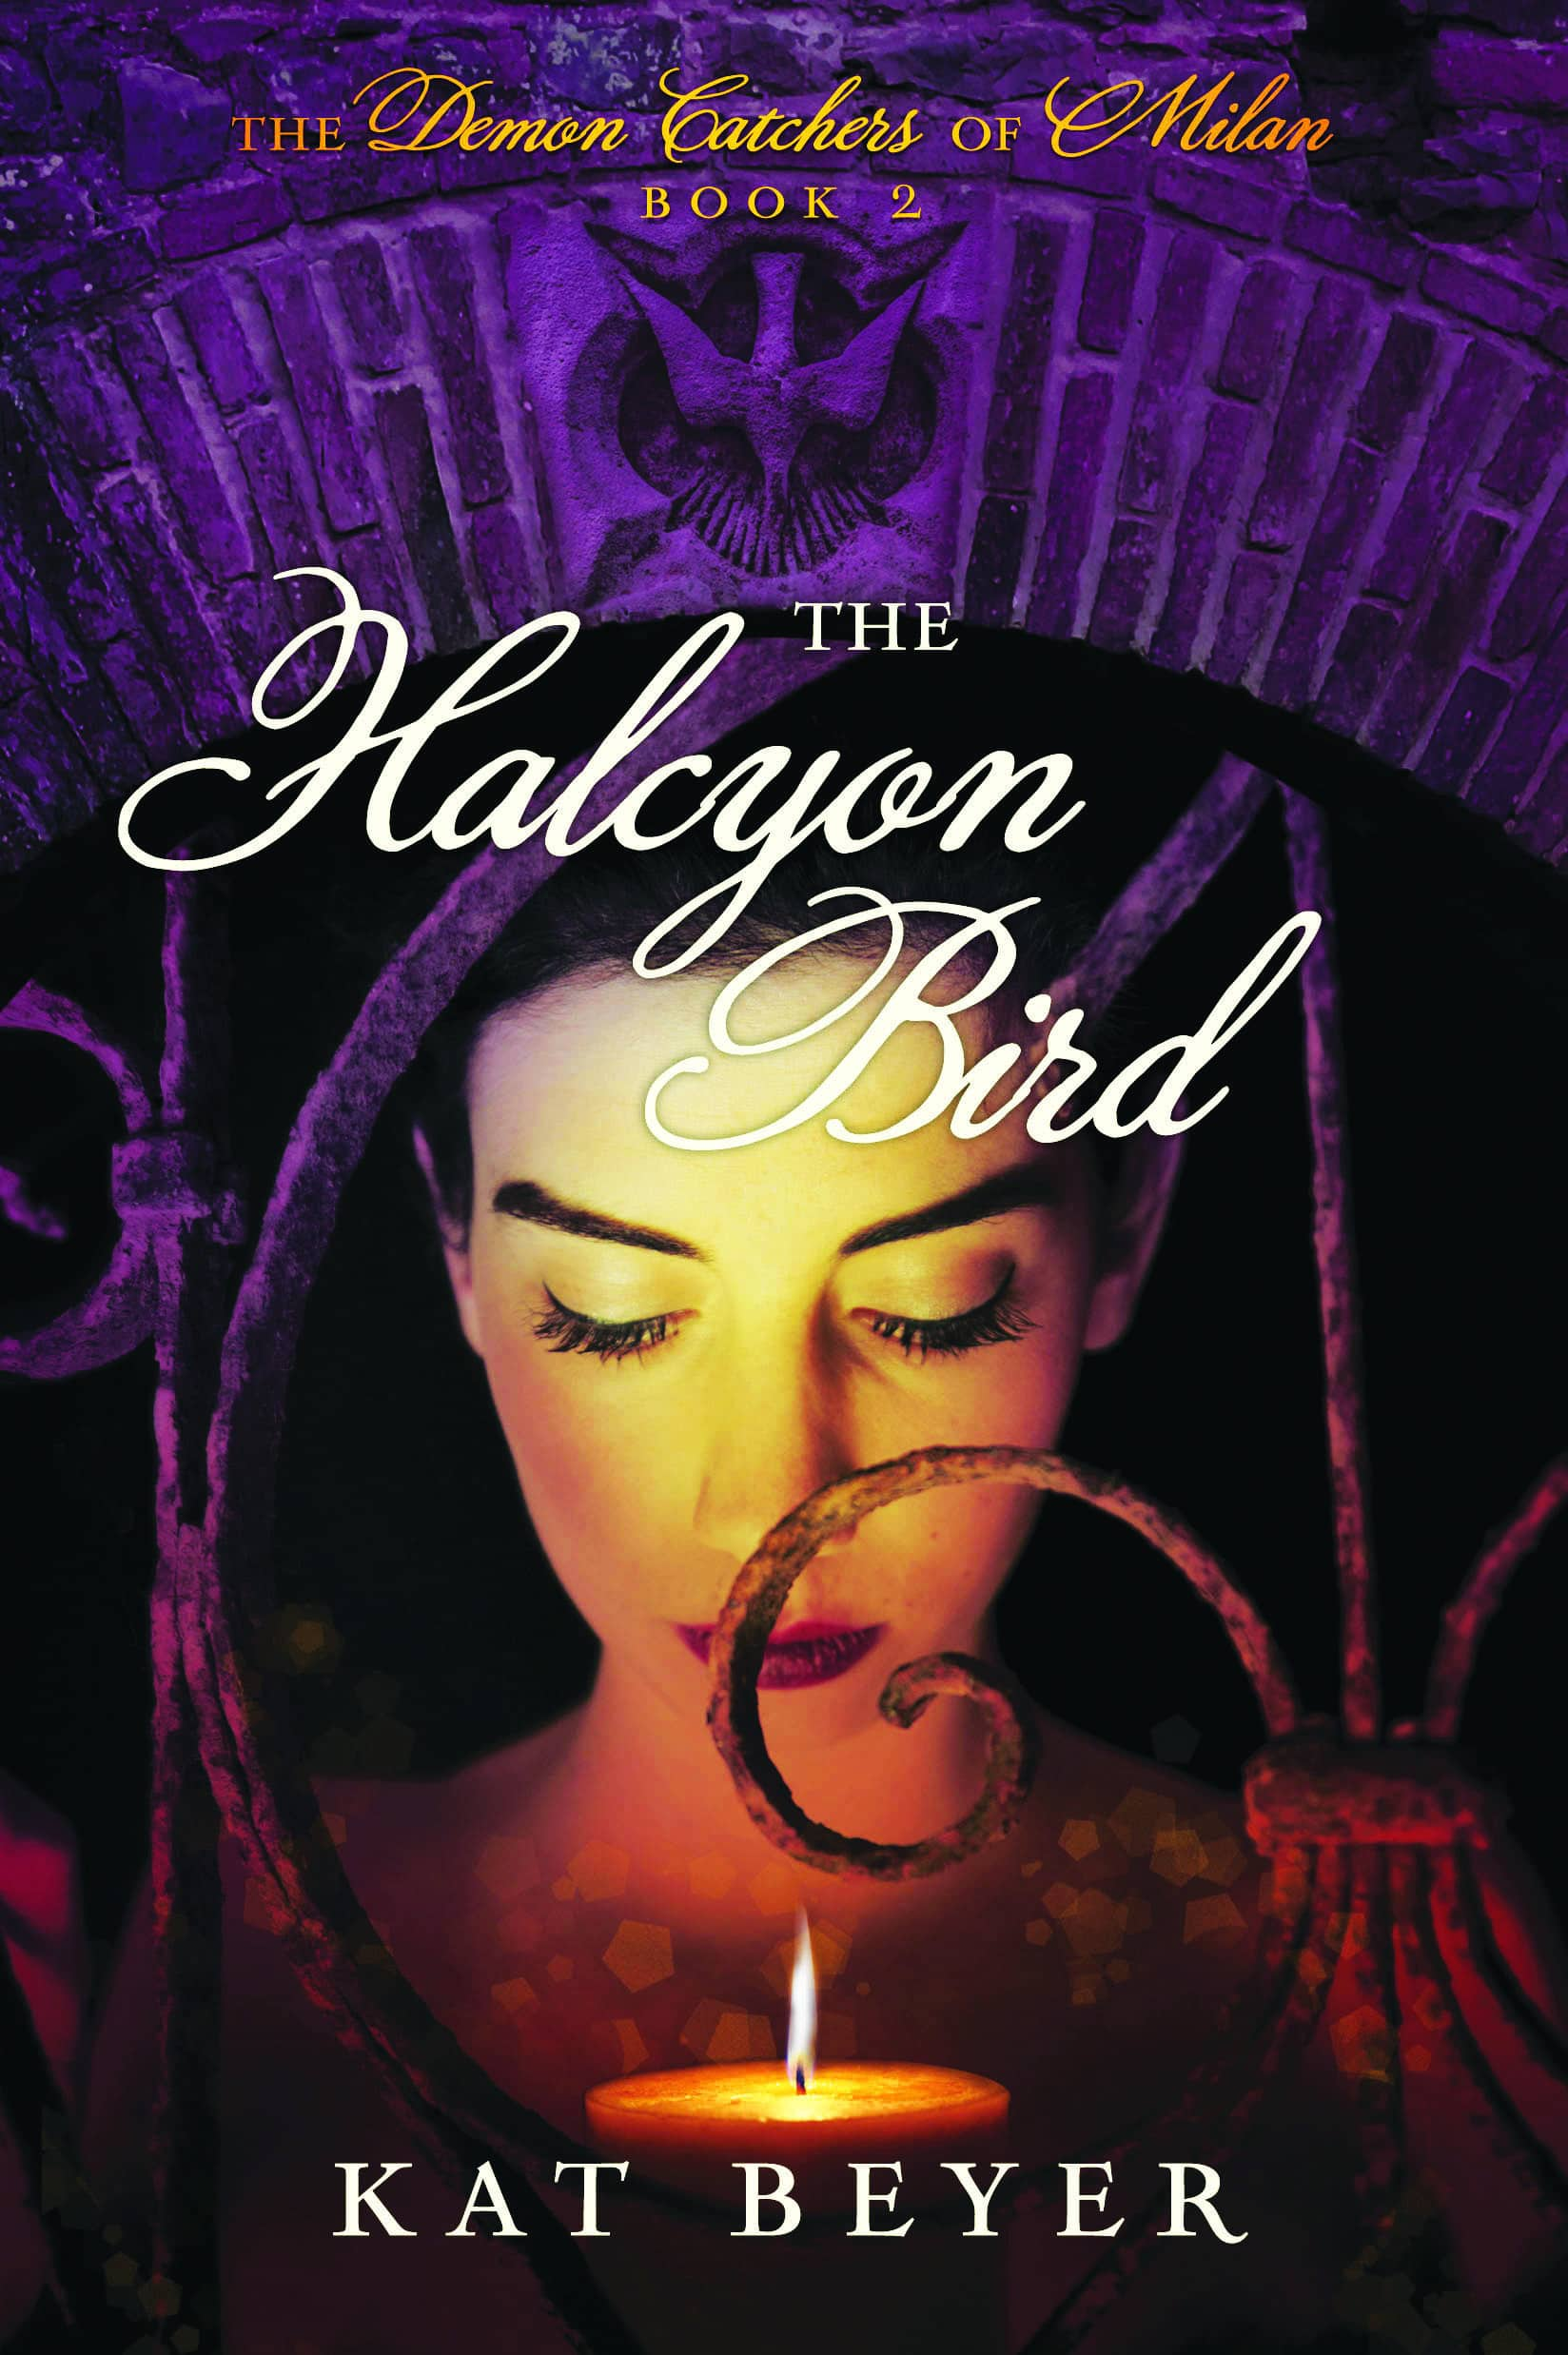 The Demon Catchers of Milan #2: The Halcyon Bird